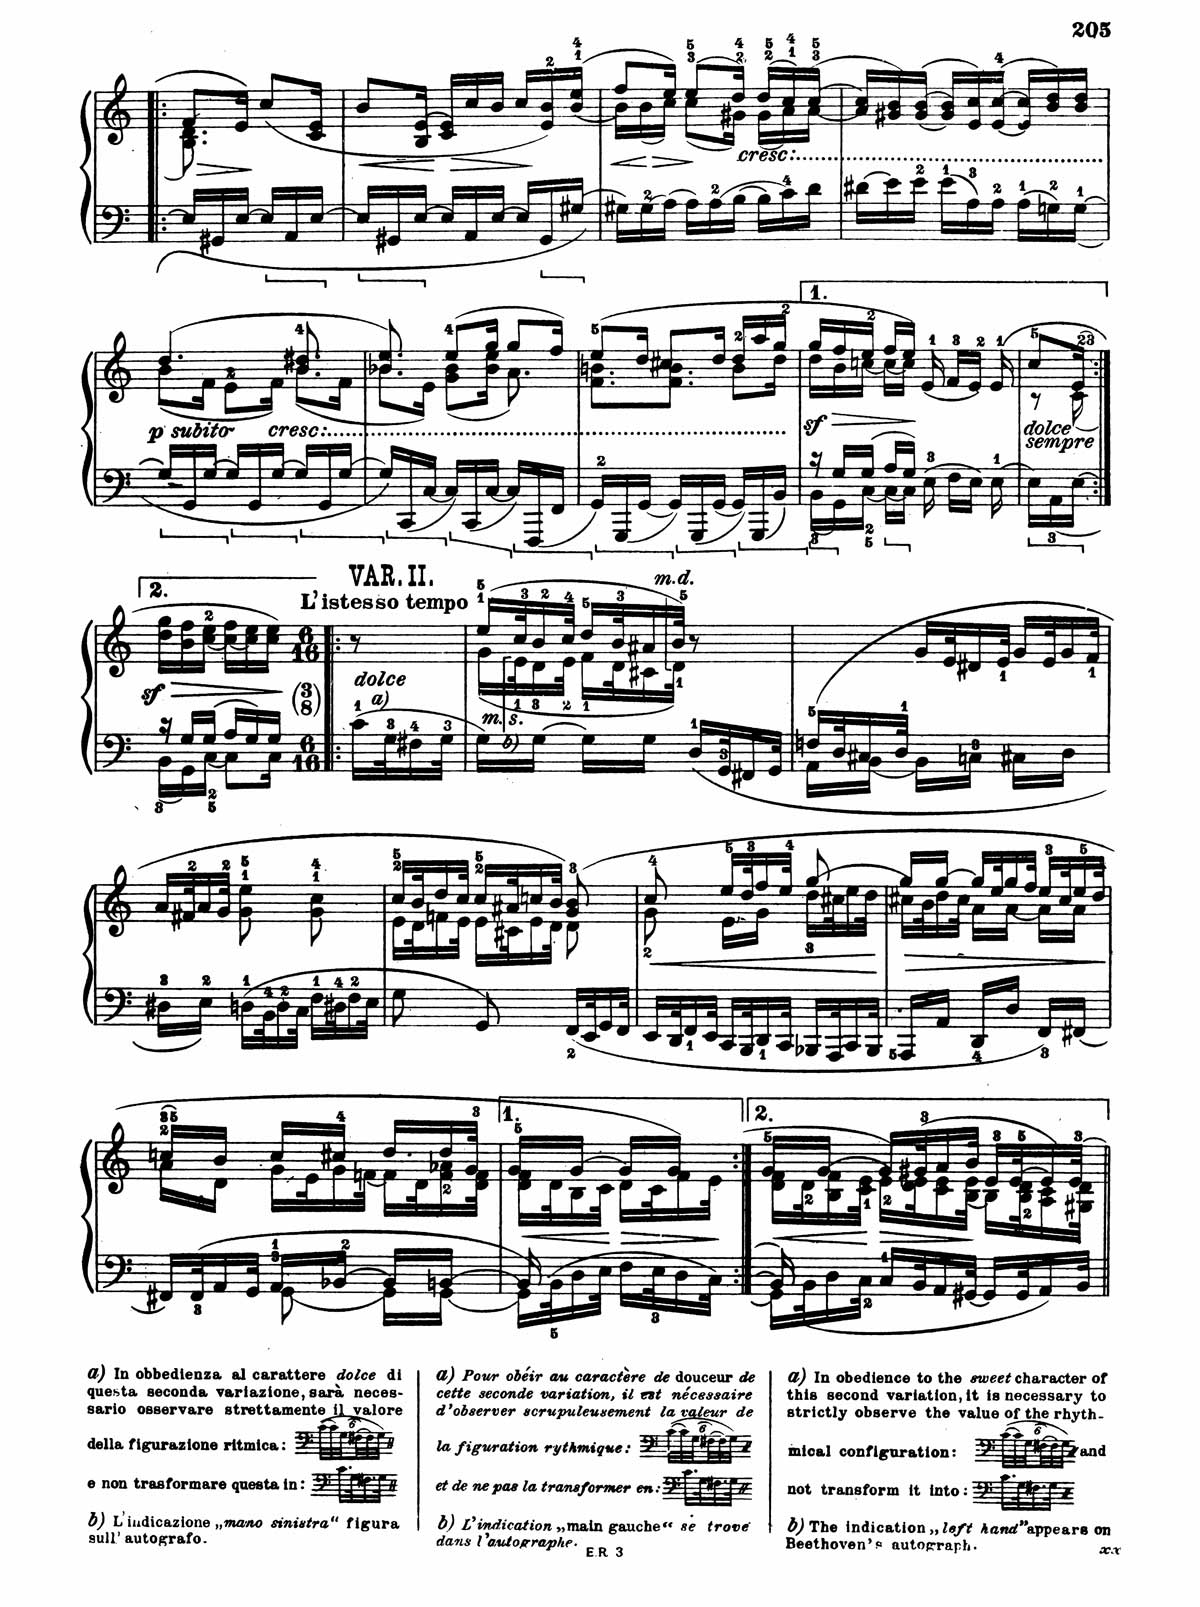 Beethoven Piano Sonata 32-13 sheet music